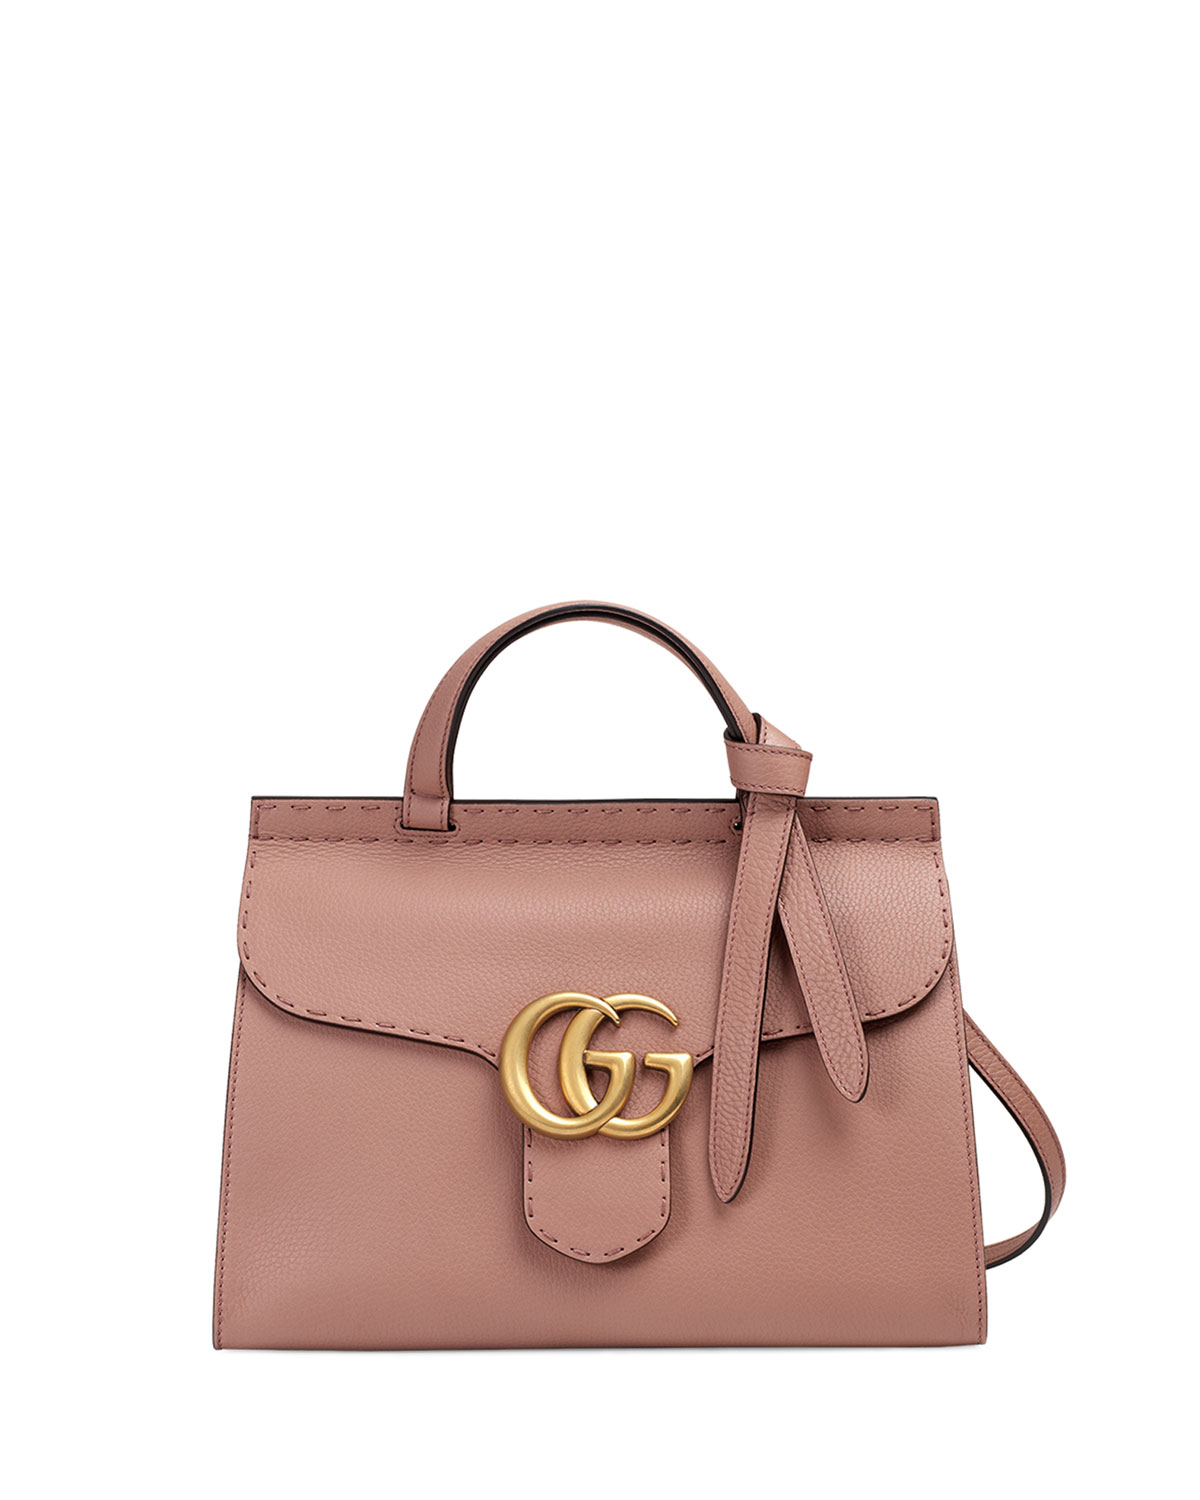 3bda1ec01933 Gucci GG Marmont Small Top-Handle Satchel Bag, Taupe | Neiman Marcus